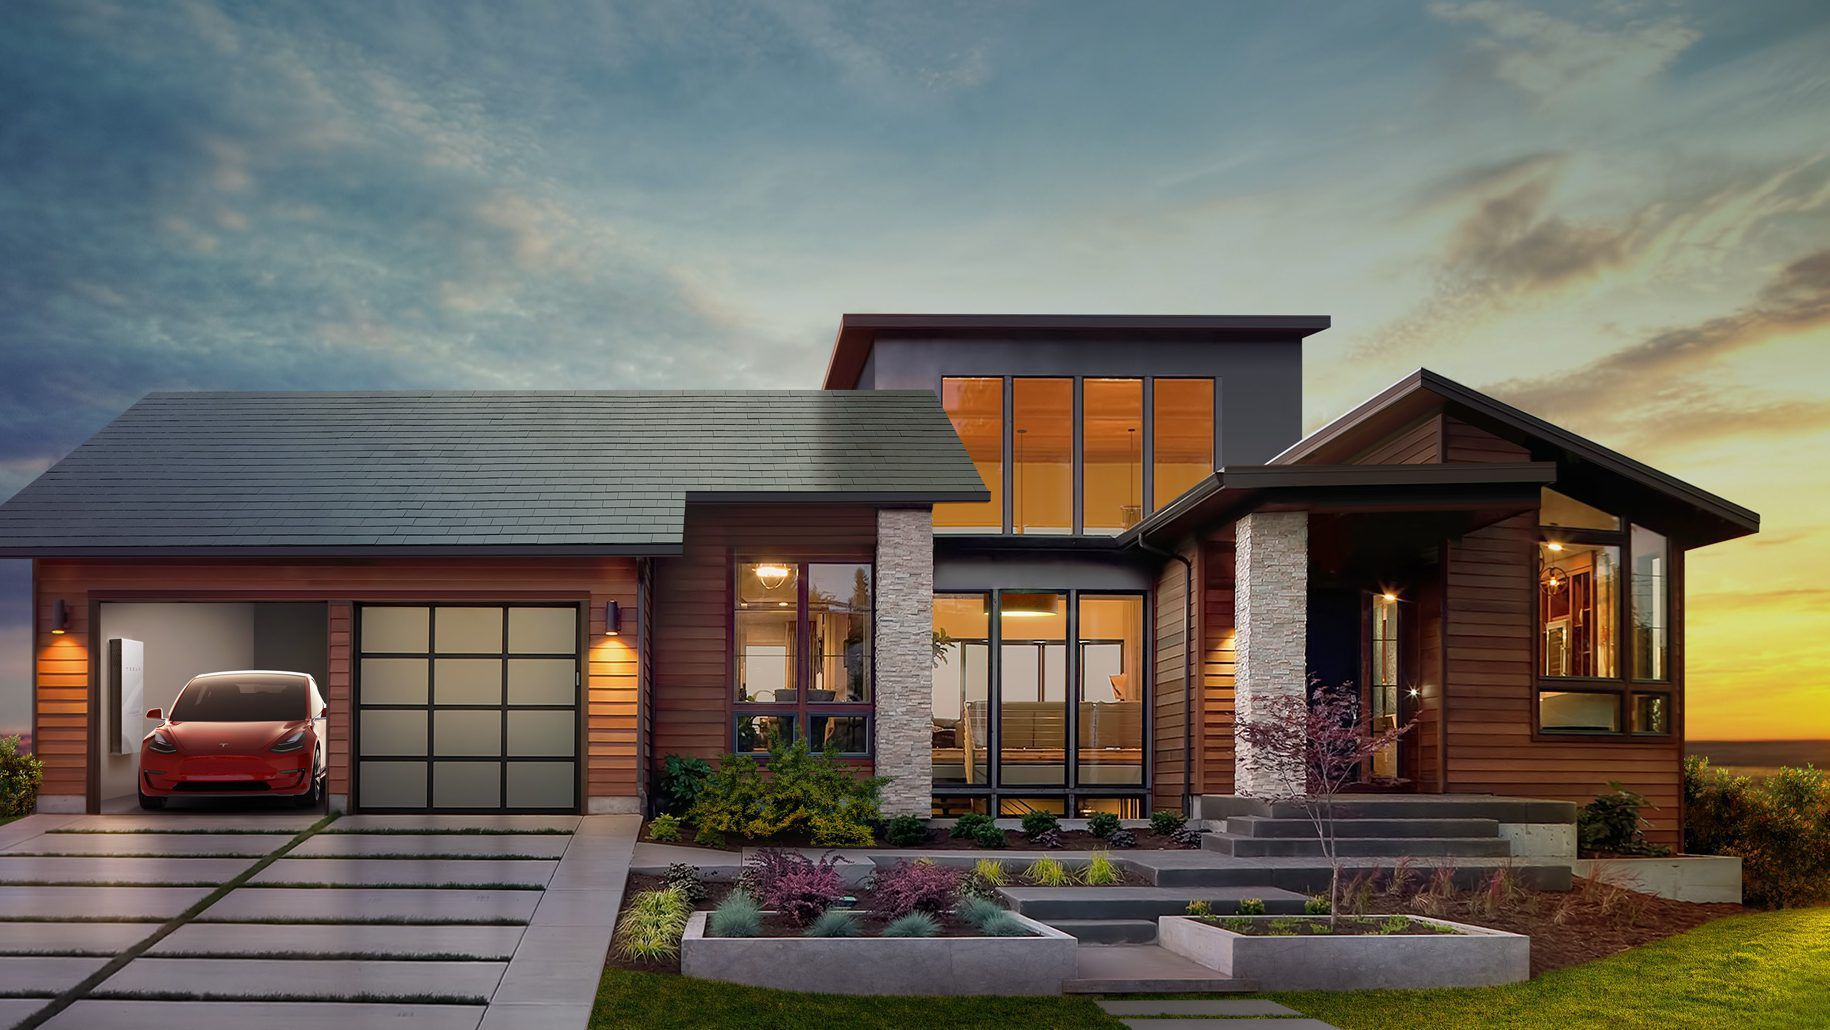 Elon Musk Tesla Tsla And Solar City Are Using Apple S Playbook To Turn Your Roof Into A Gorgeous Solar Powe Solar Roof Shingles Tesla Solar Roof Solar Tiles